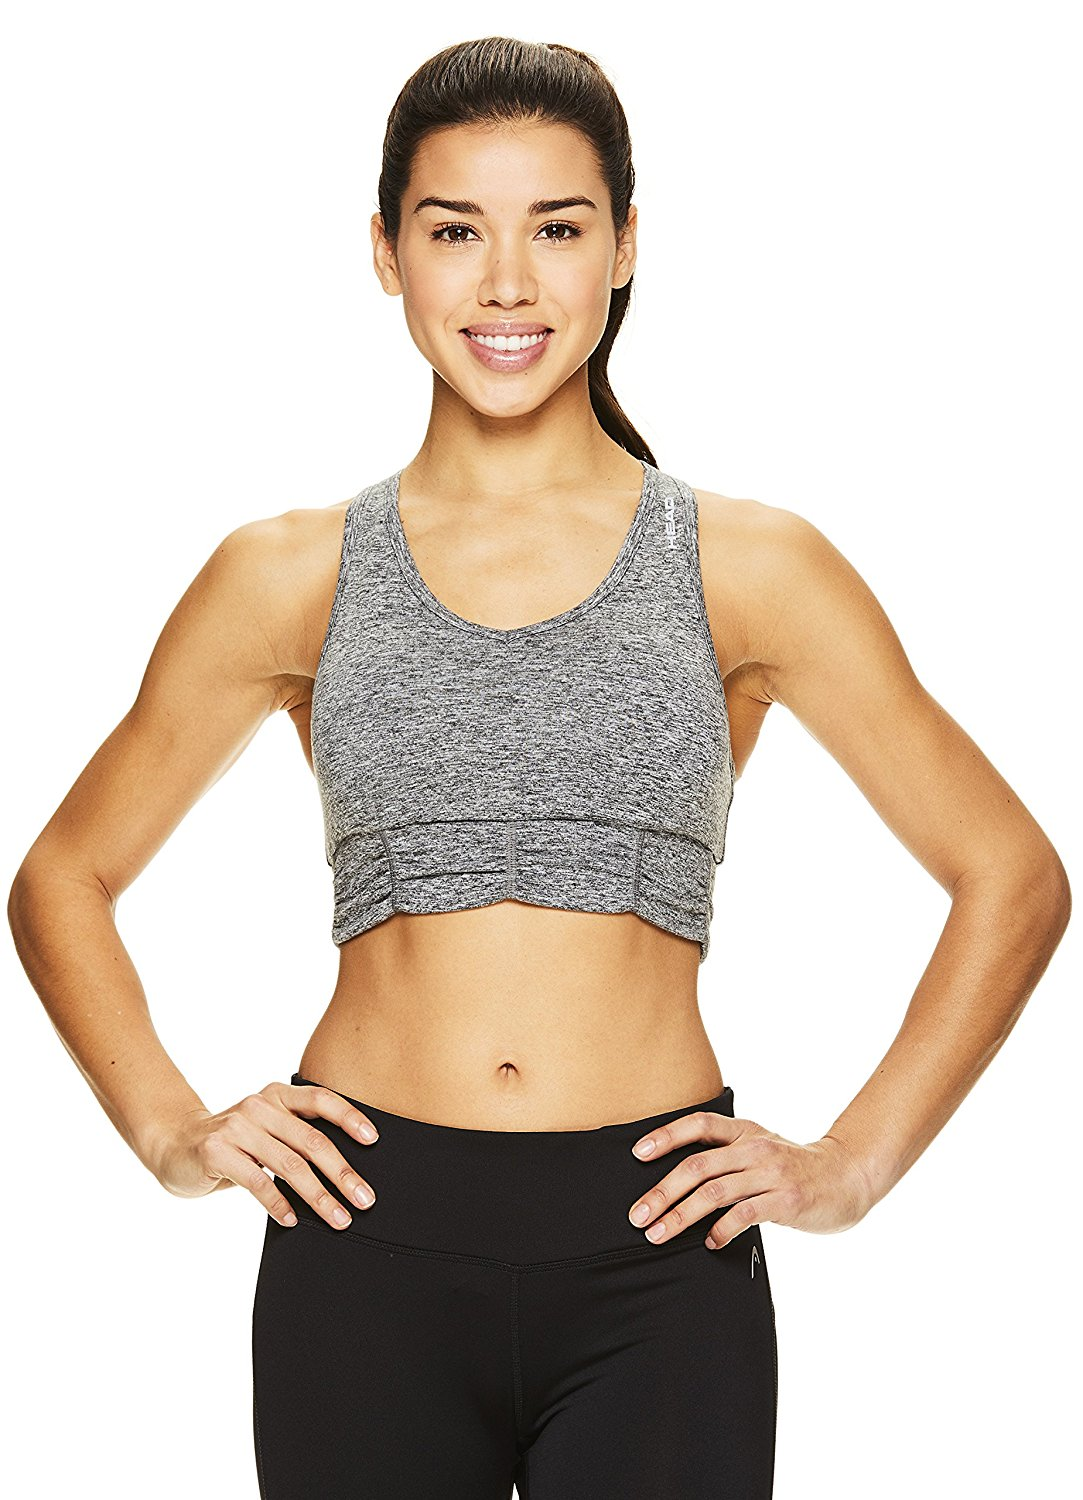 1a3aa13071 Get Quotations · HEAD Women s Perfect Match Sports Bra - Wireless Racerback Fitness  Bra w  Removable Cups